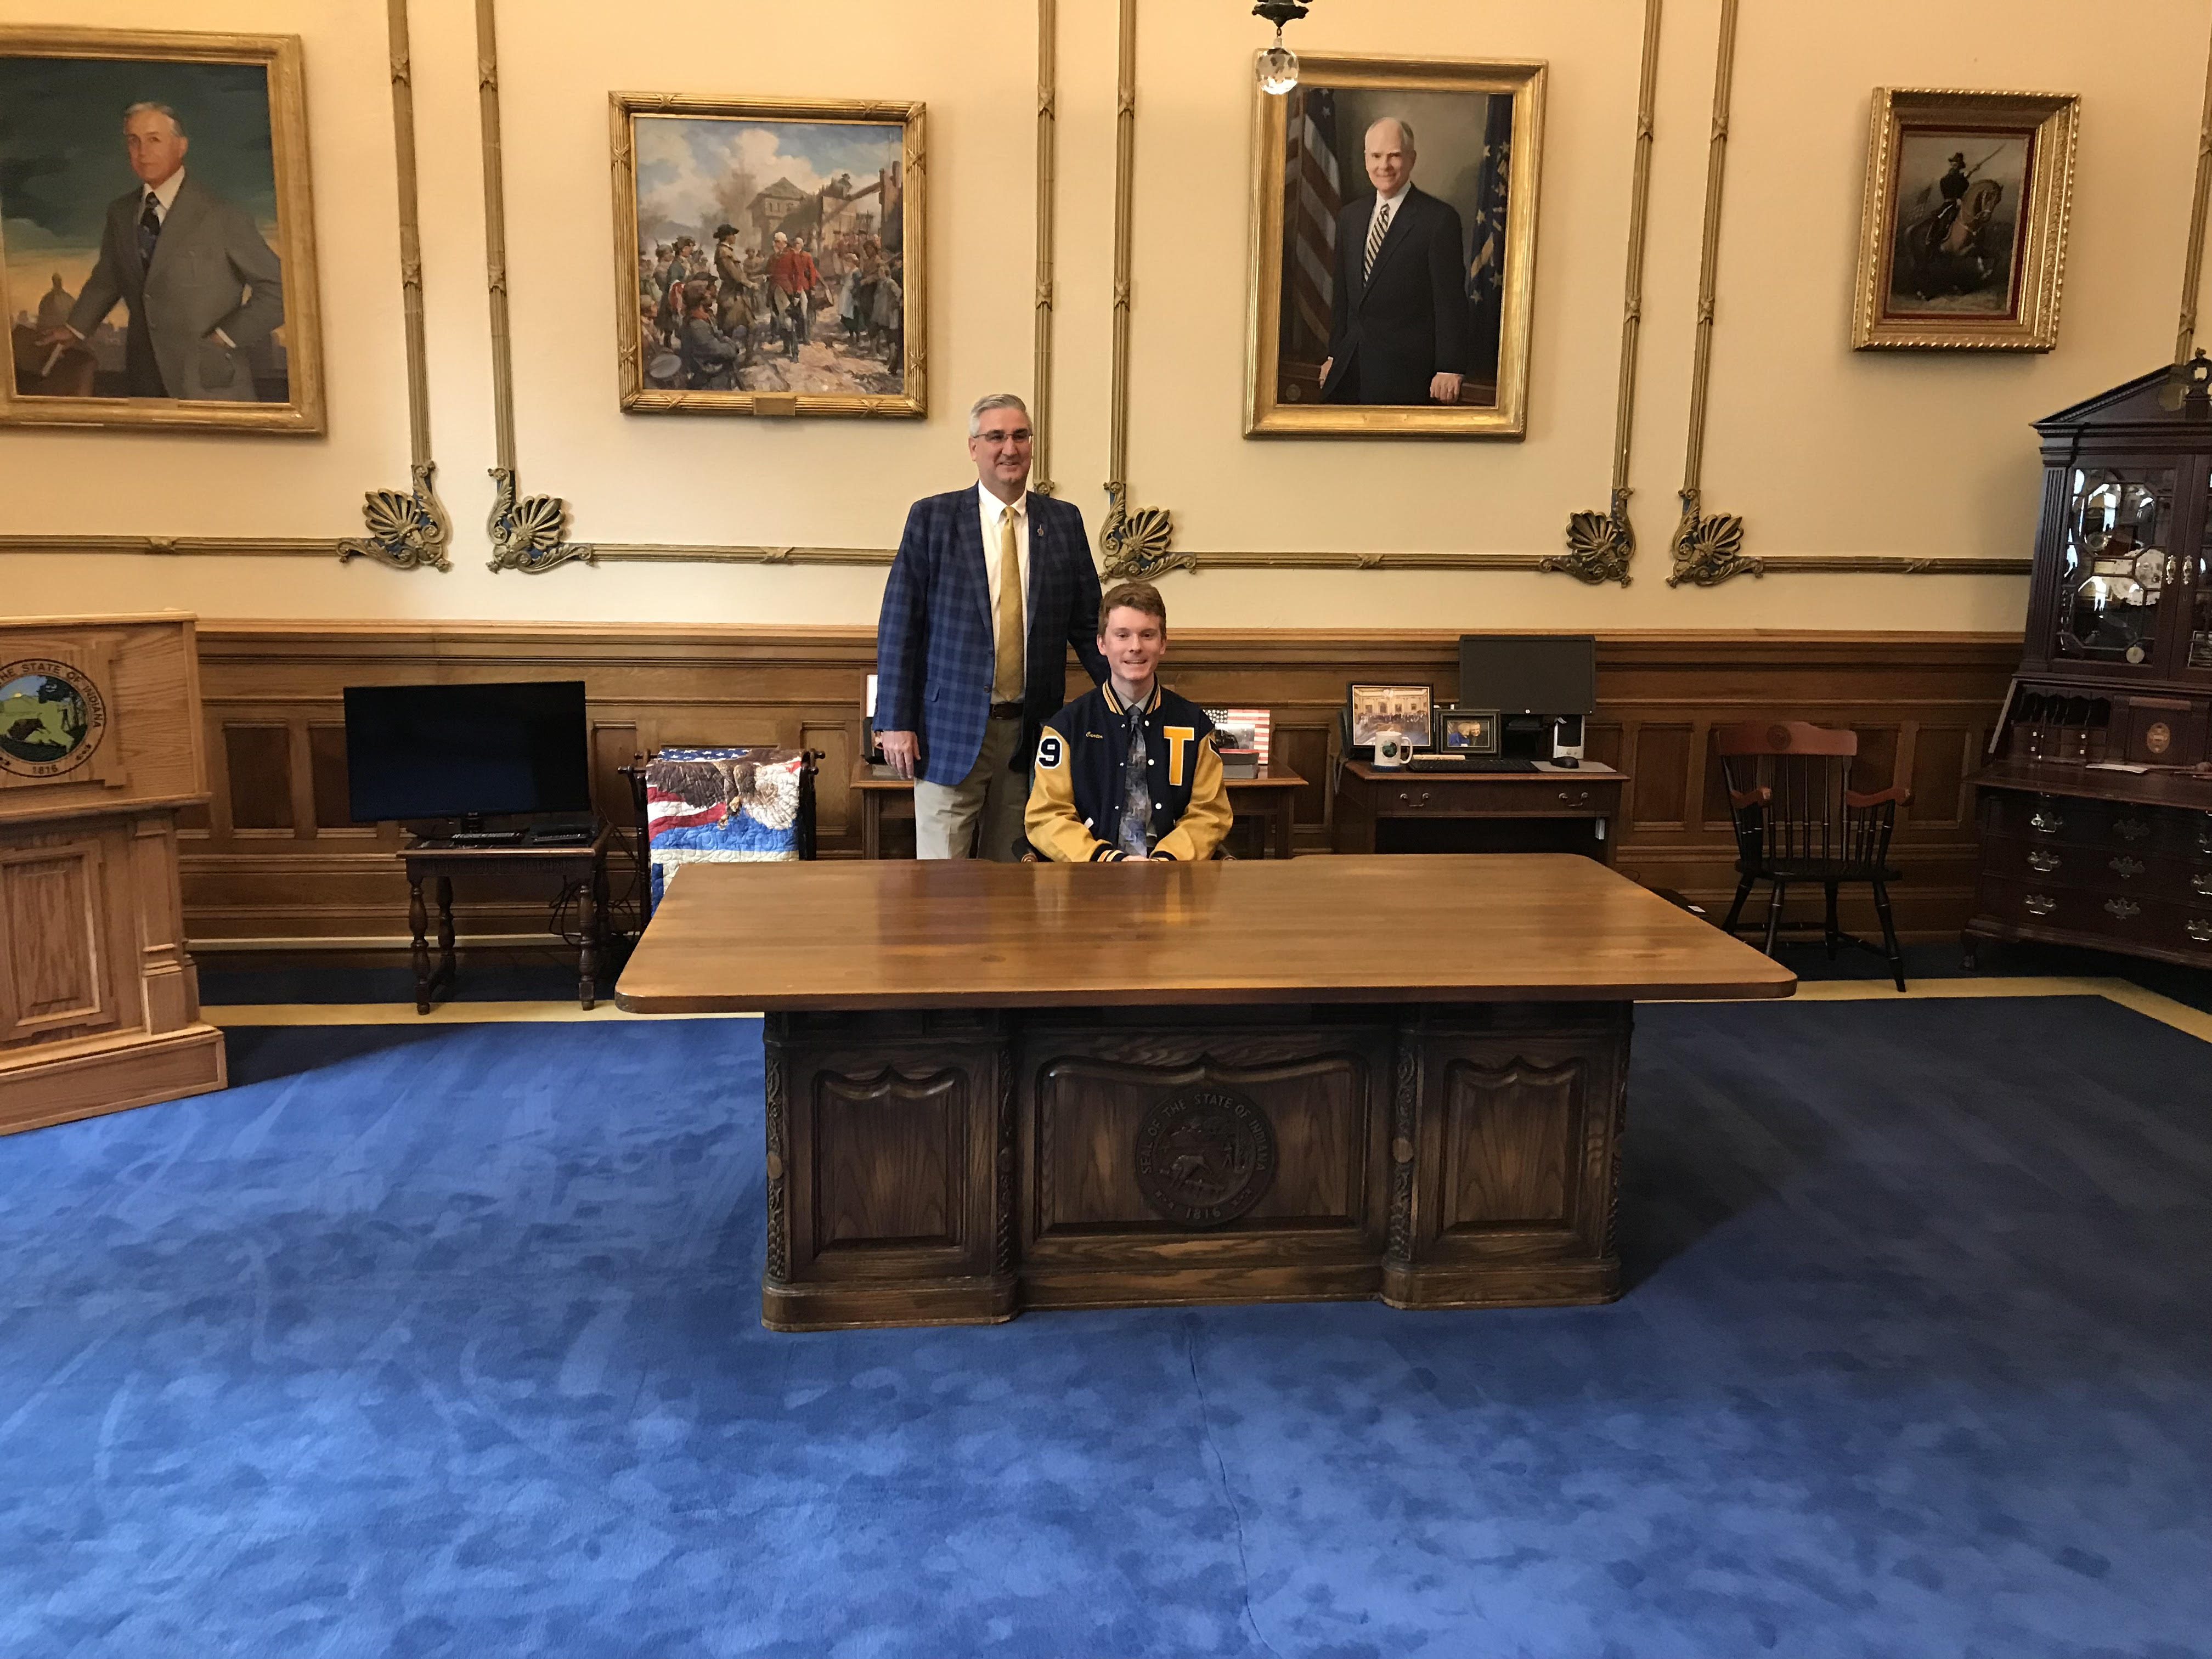 After being selected to Governor Holcomb's prestigious STEM team , Carter Goldman tries on the Governor's chair for size.